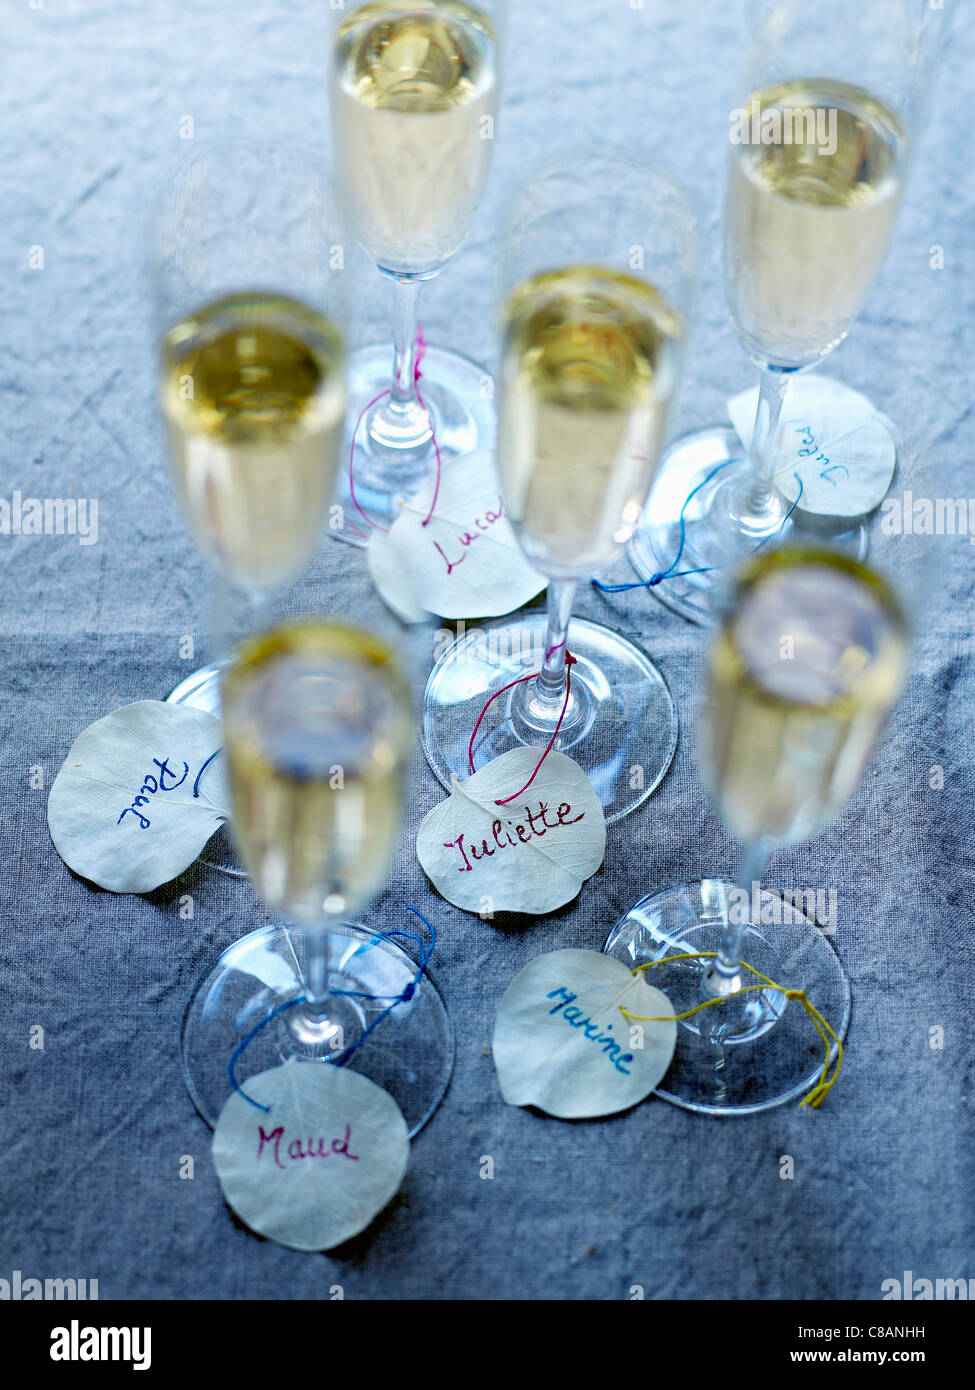 Glasses of Champagne with white leaf name-tags - Stock Image